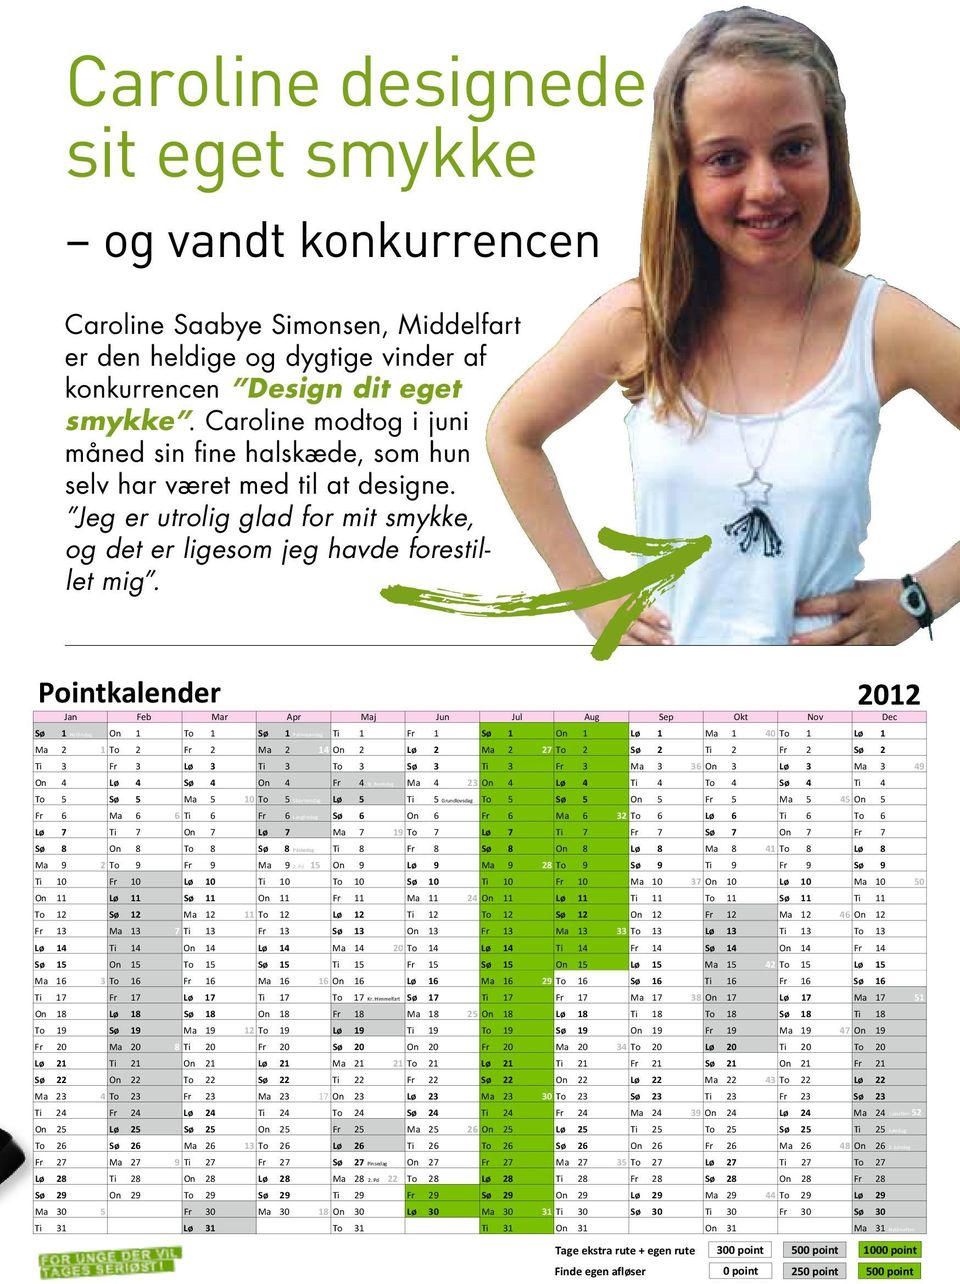 Pointkalender Jan Feb Mar Apr Maj Jun Jul Aug Sep Okt Nov Dec Sø 1 Nytårsdag On 1 To 1 Sø 1 Palmesøndag Ti 1 Fr 1 Sø 1 On 1 Lø 1 Ma 1 40 To 1 Lø 1 Ma 2 1 To 2 Fr 2 Ma 2 14 On 2 Lø 2 Ma 2 27 To 2 Sø 2